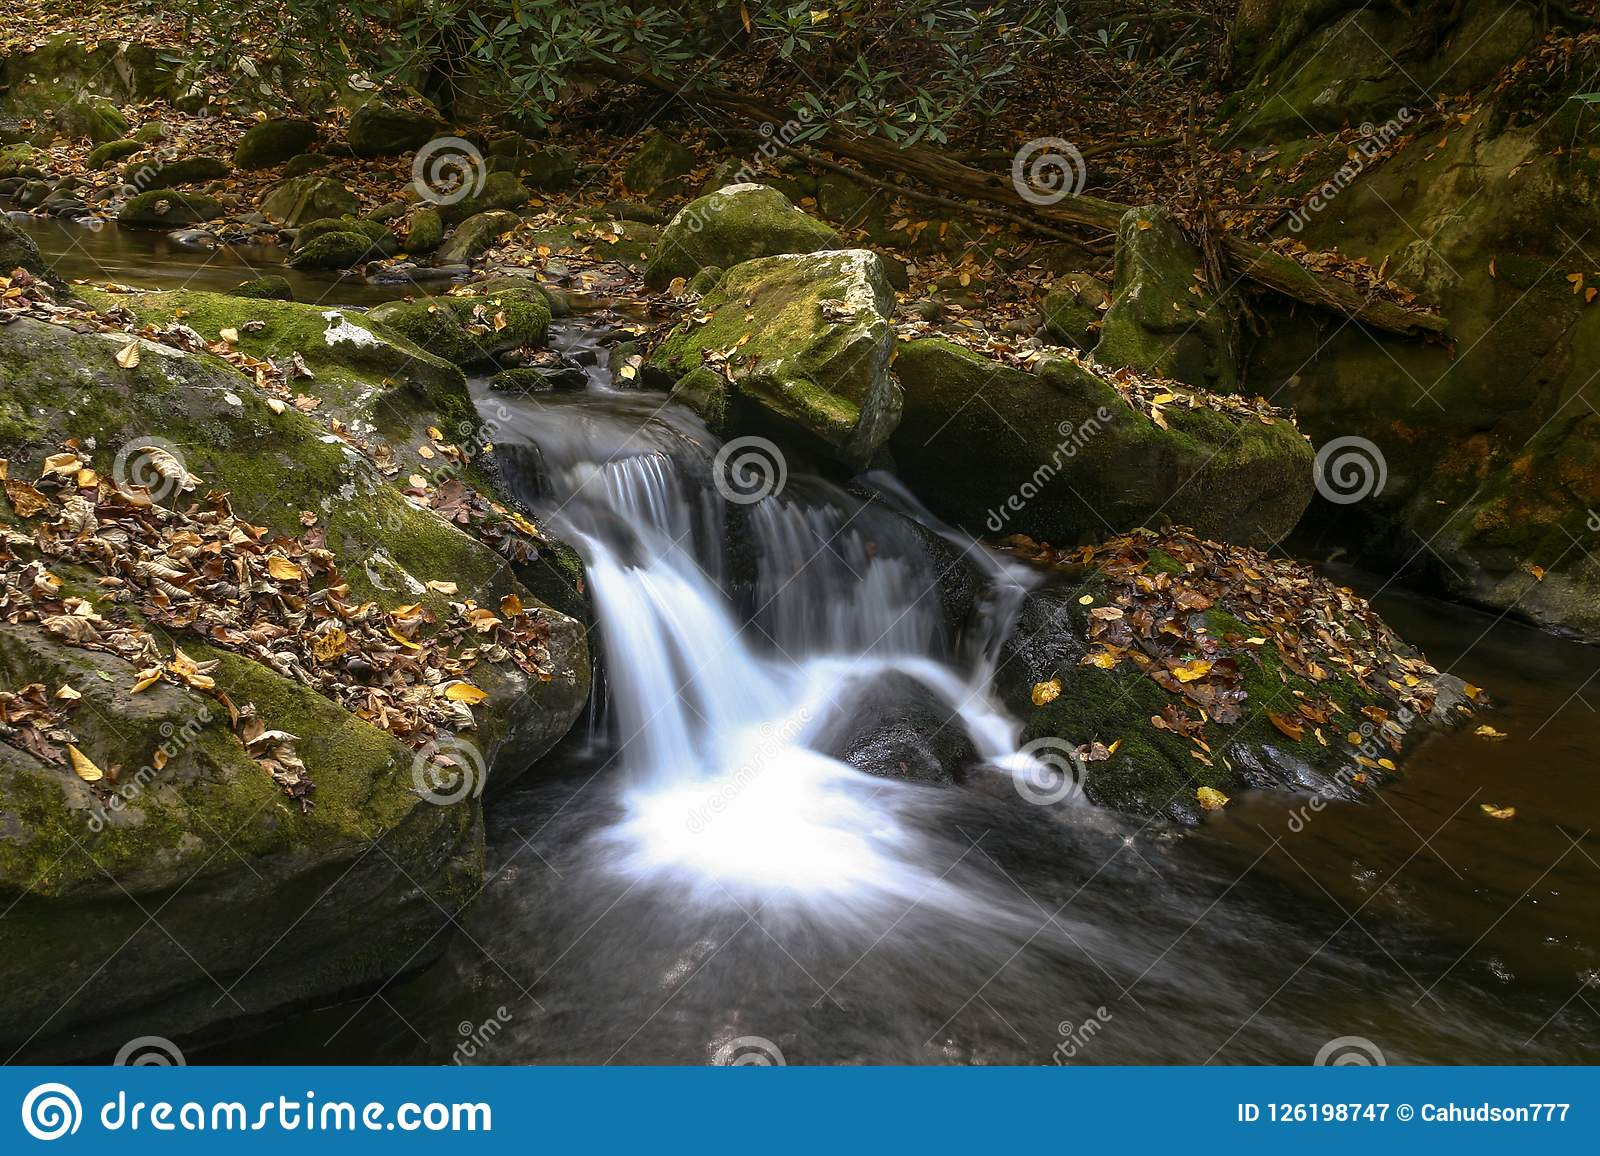 Waterfall along the stream in the Smoky Mountains in fall.